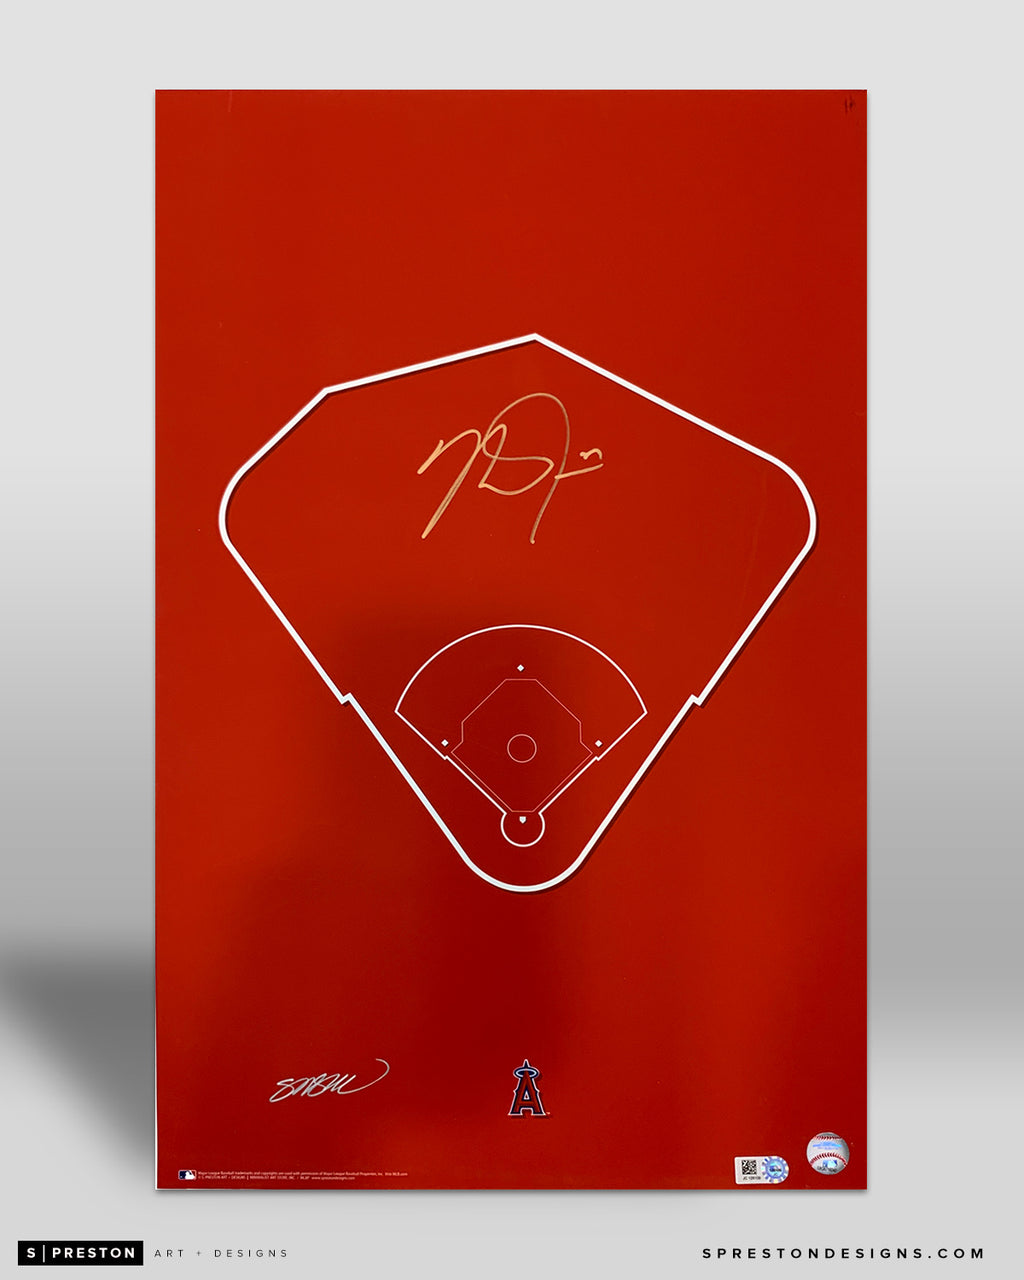 Outline Angel Stadium - Mike Trout Signed - MLB Authenticated